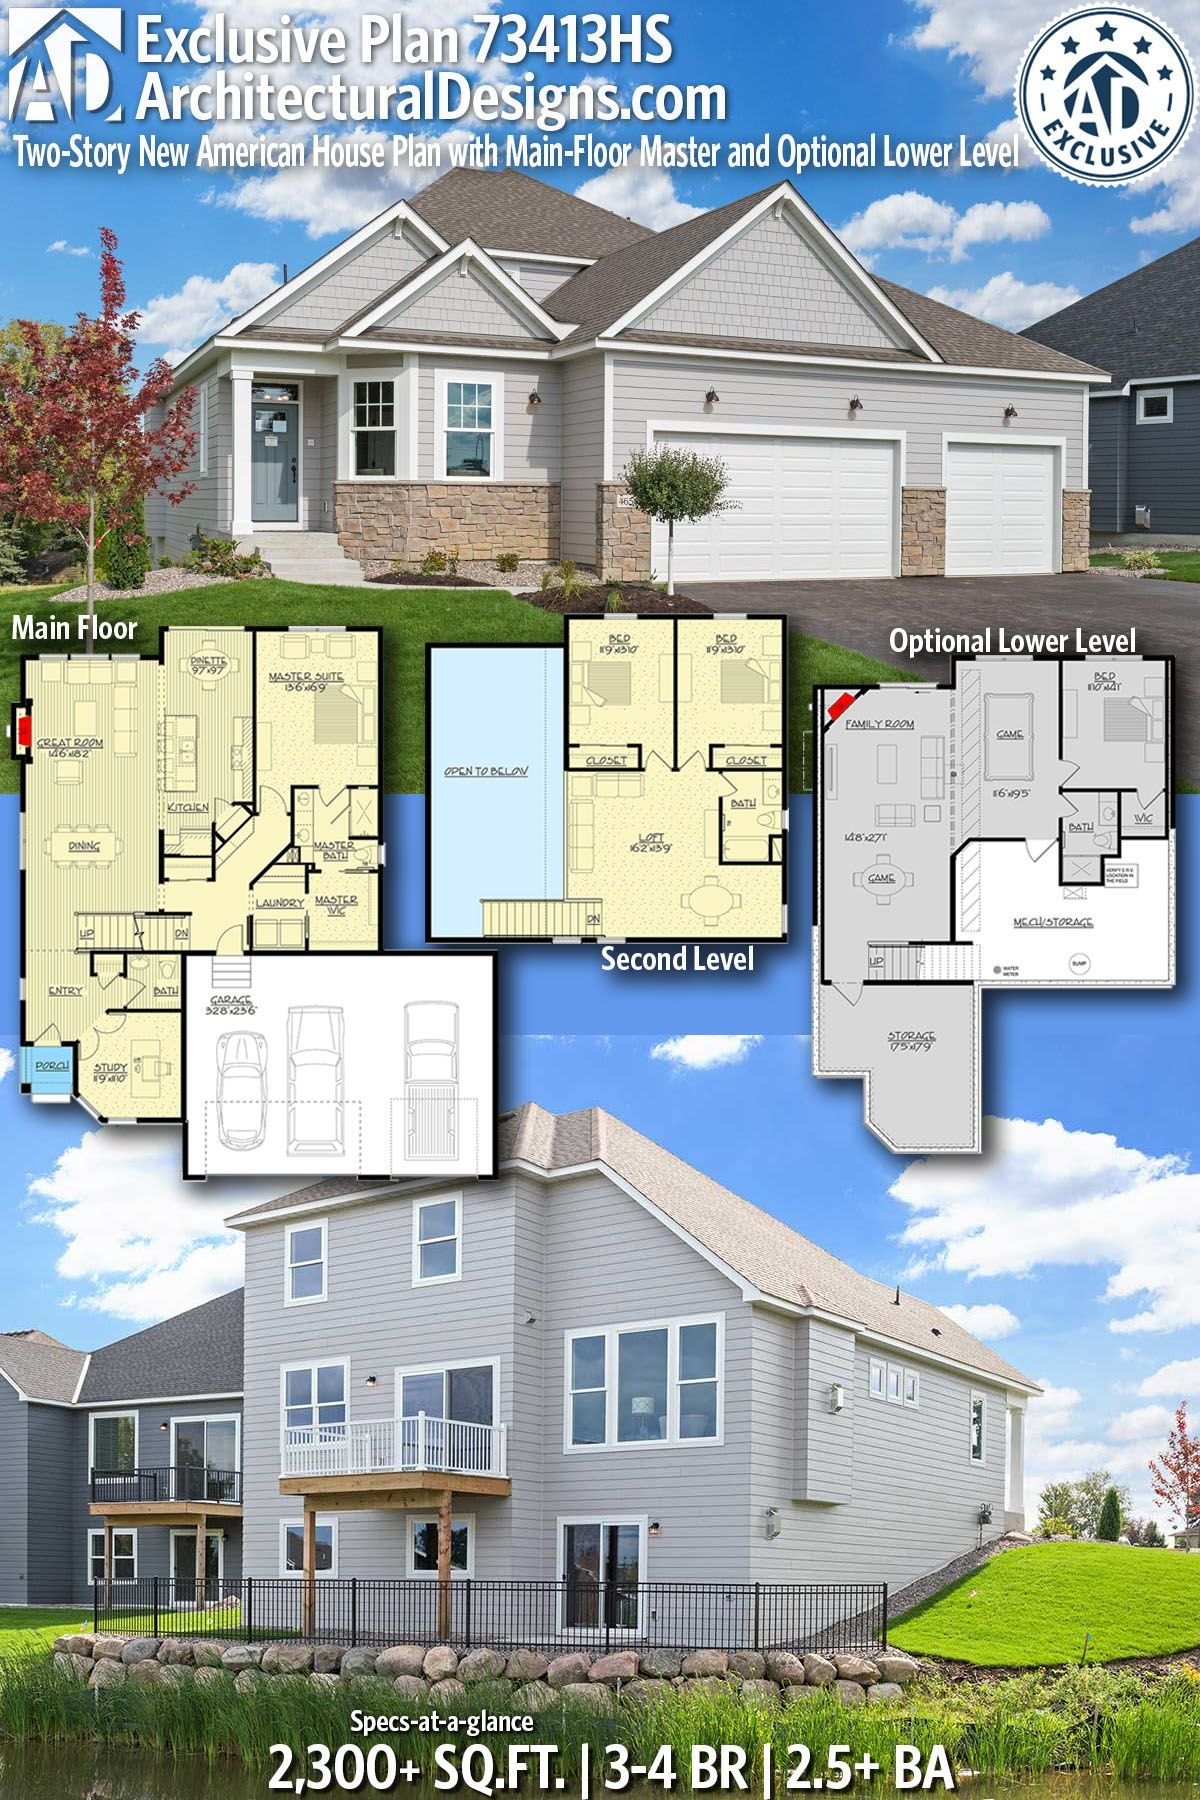 Plan 73413hs Two Story New American House Plan With Main Floor Master And Optional Lower Level House Plans Build Dream Home American Houses